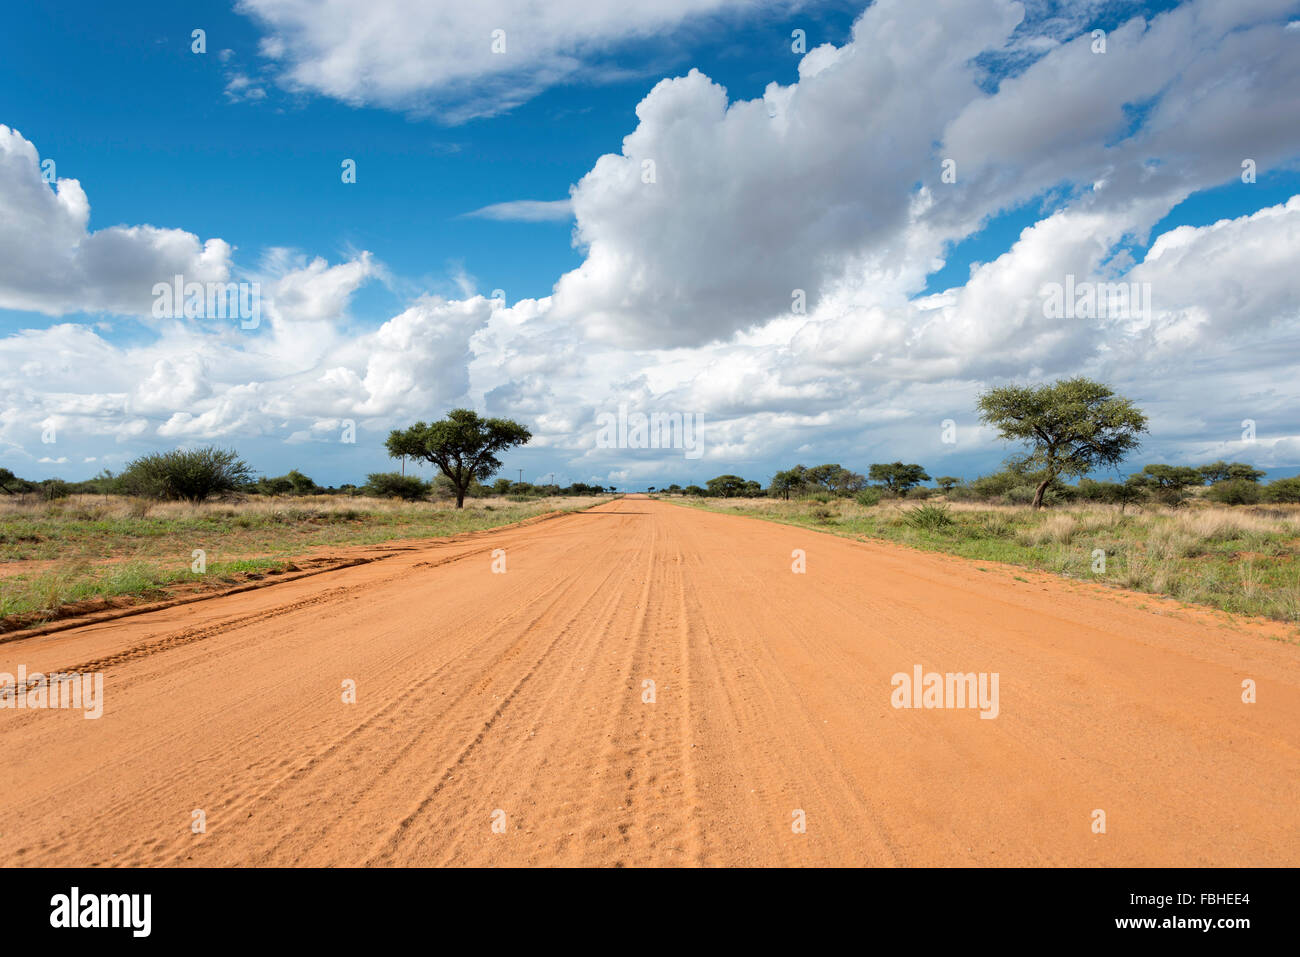 Unsealed road to Namib Naukluft Park, Solitaire, Namib Desert, Republic of Namibia - Stock Image